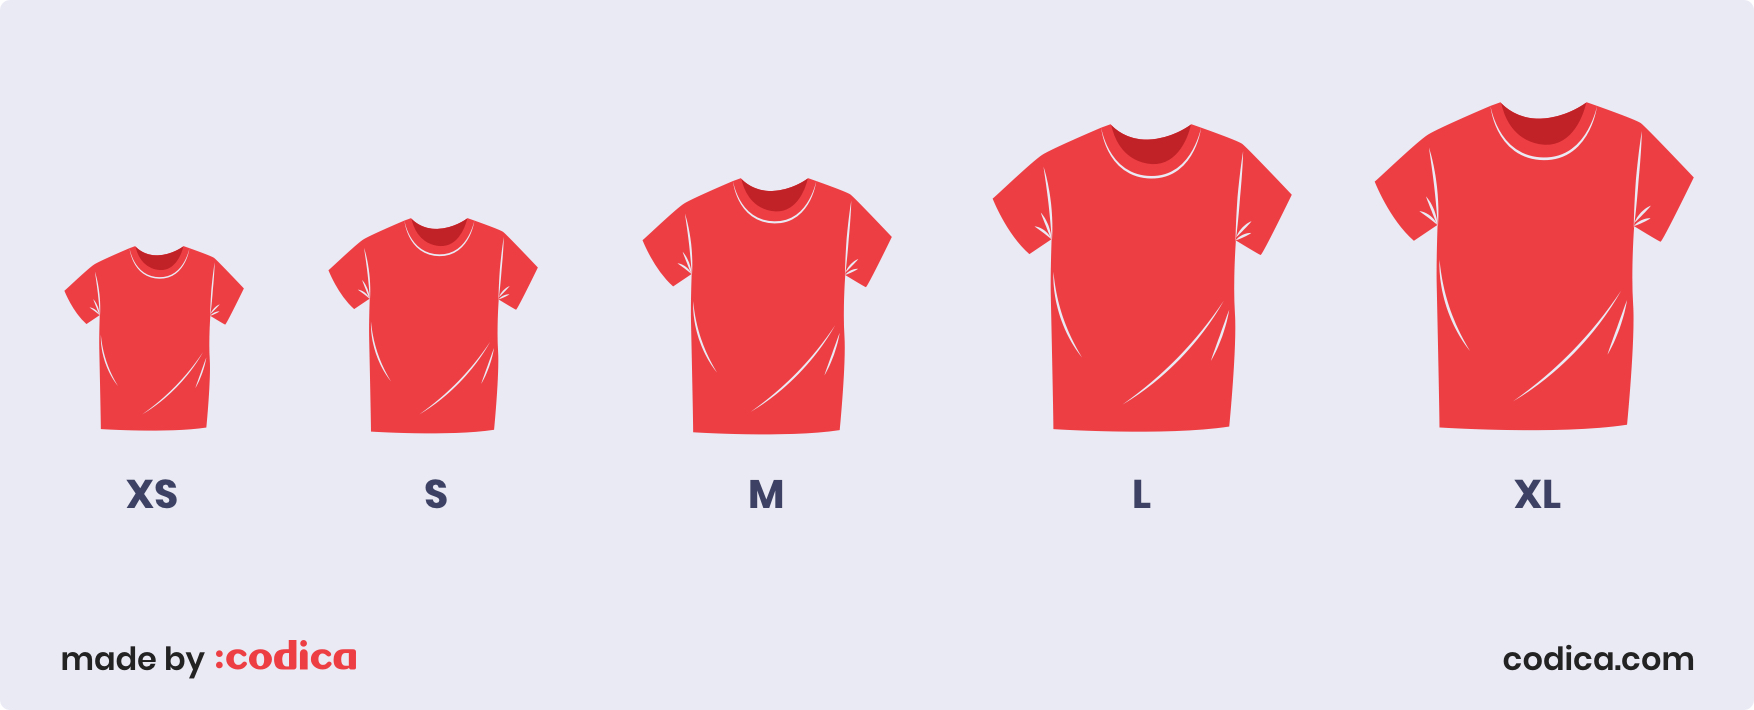 How to estimate better: T-shirt sizing approach in Agile | Codica